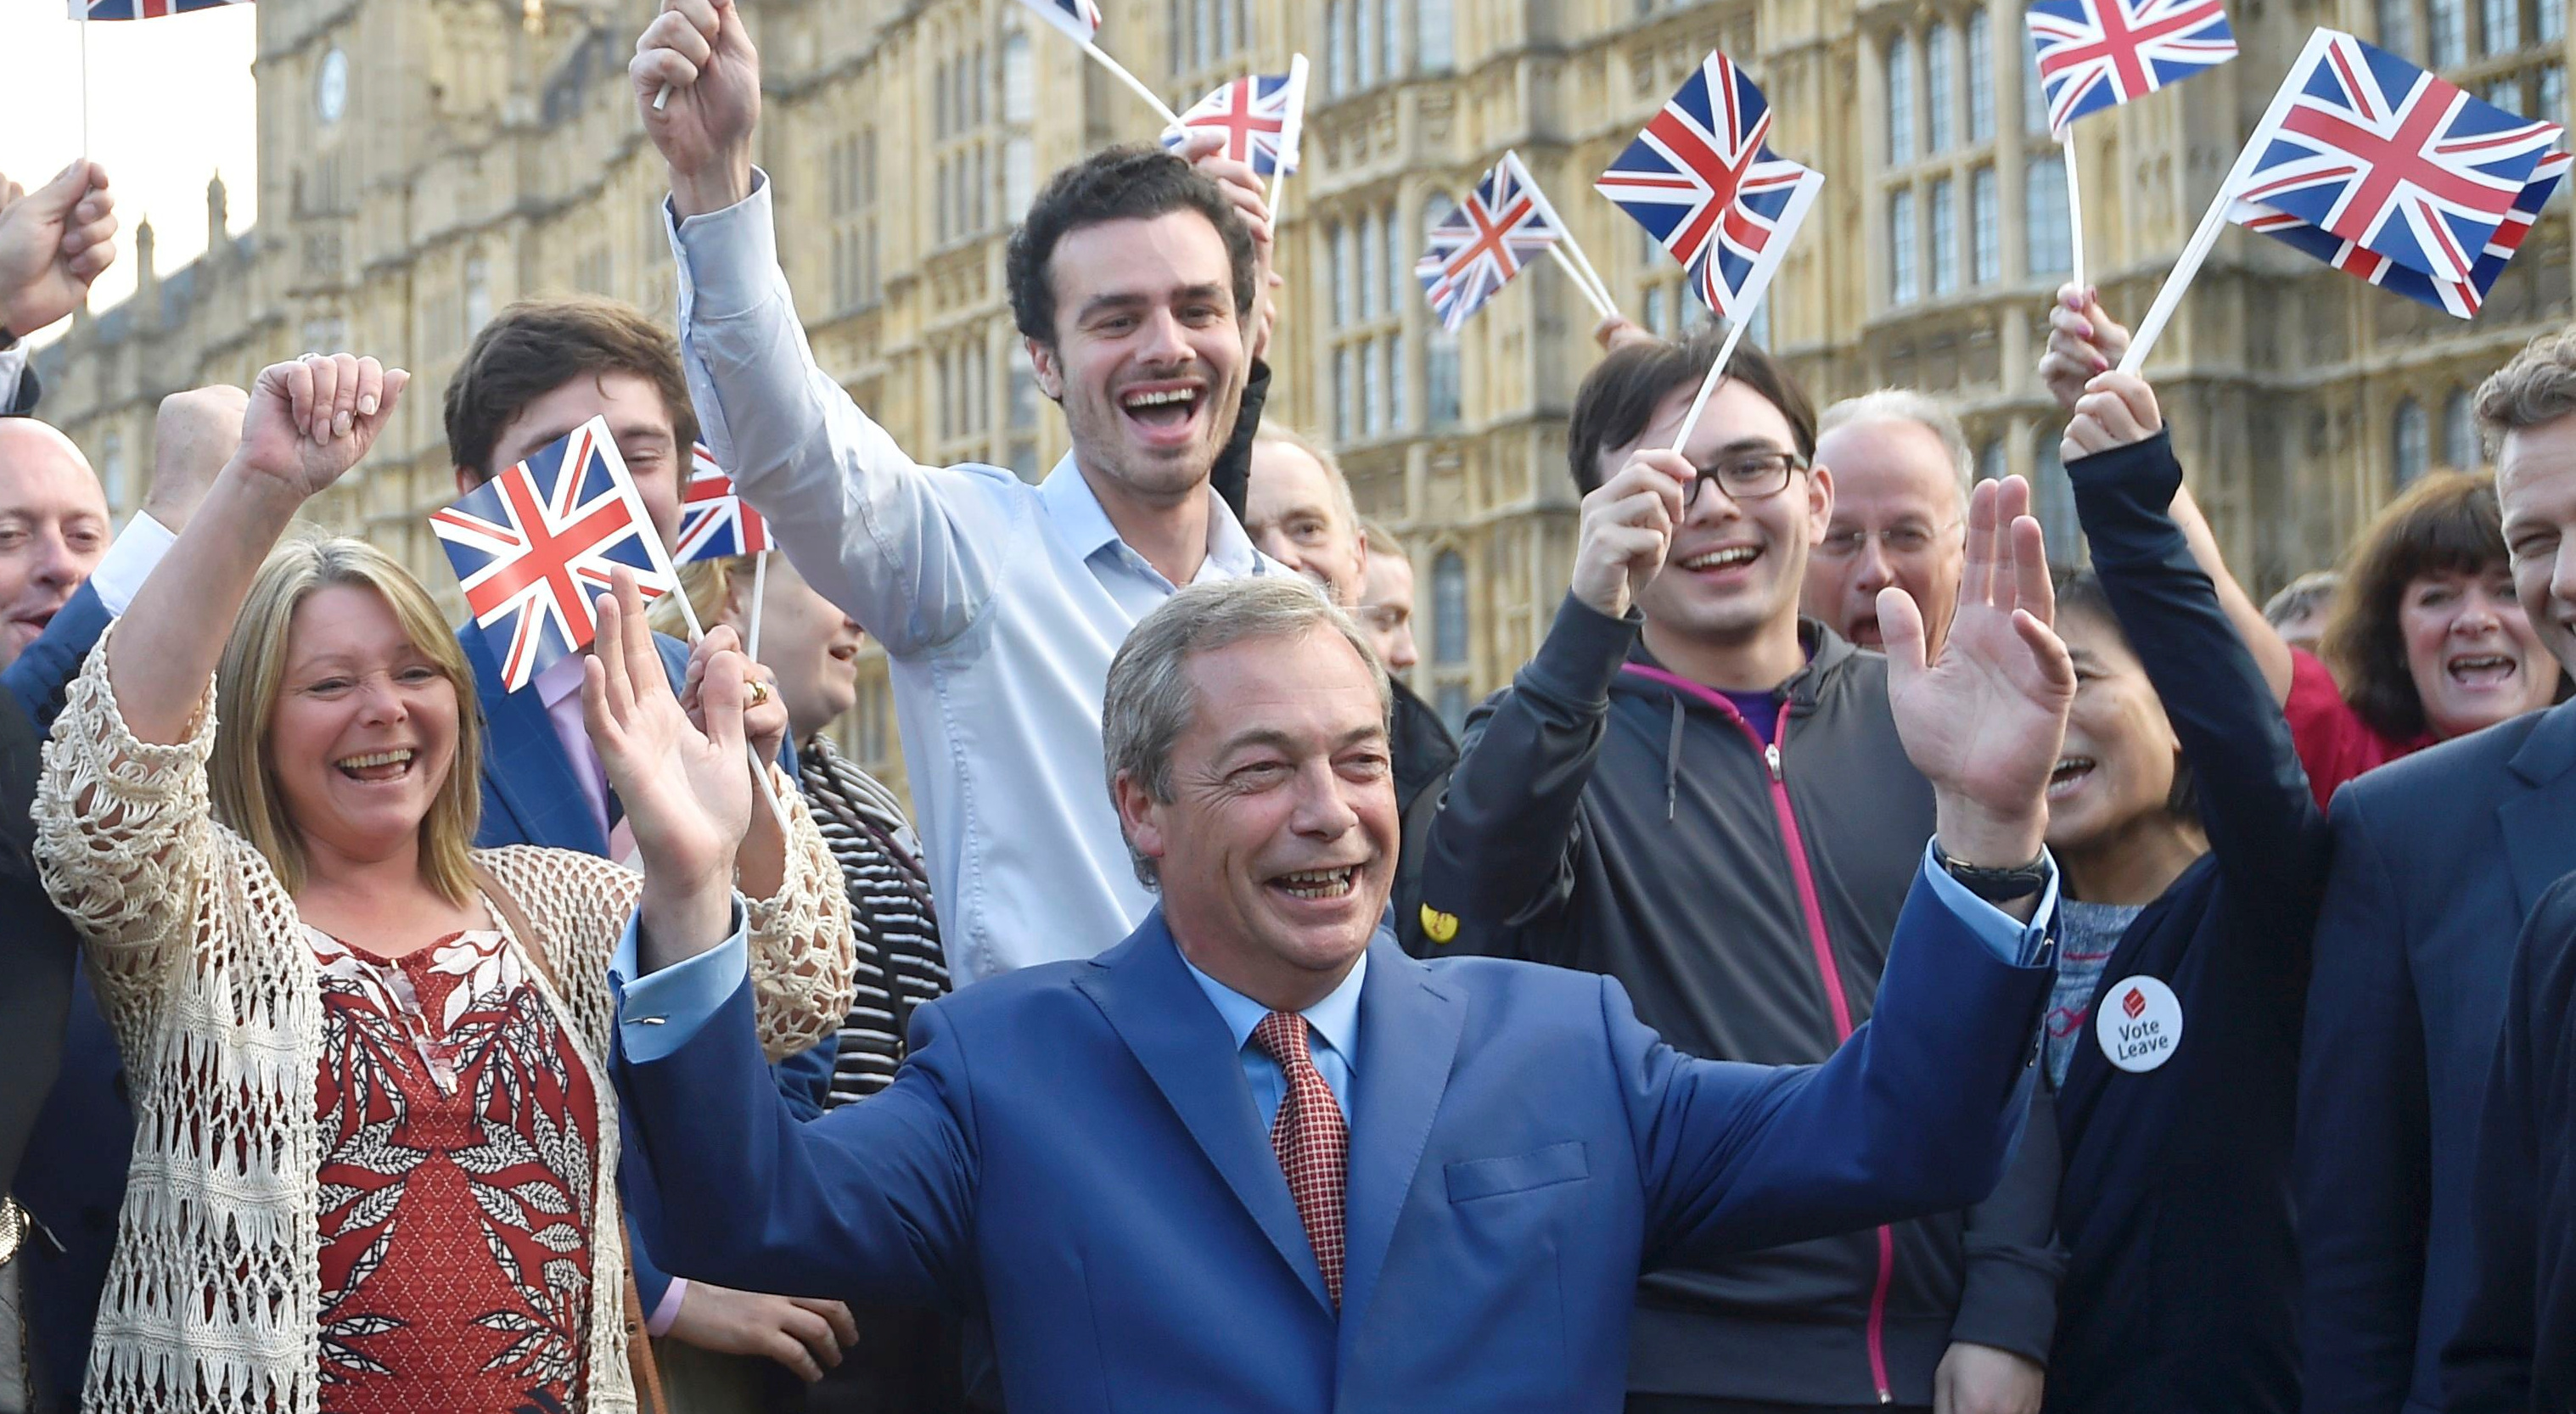 Nigel Farage, the leader of the United Kingdom Independence Party (UKIP), makes a statement after Britain voted to leave the European Union in London, Britain, June 24, 2016.